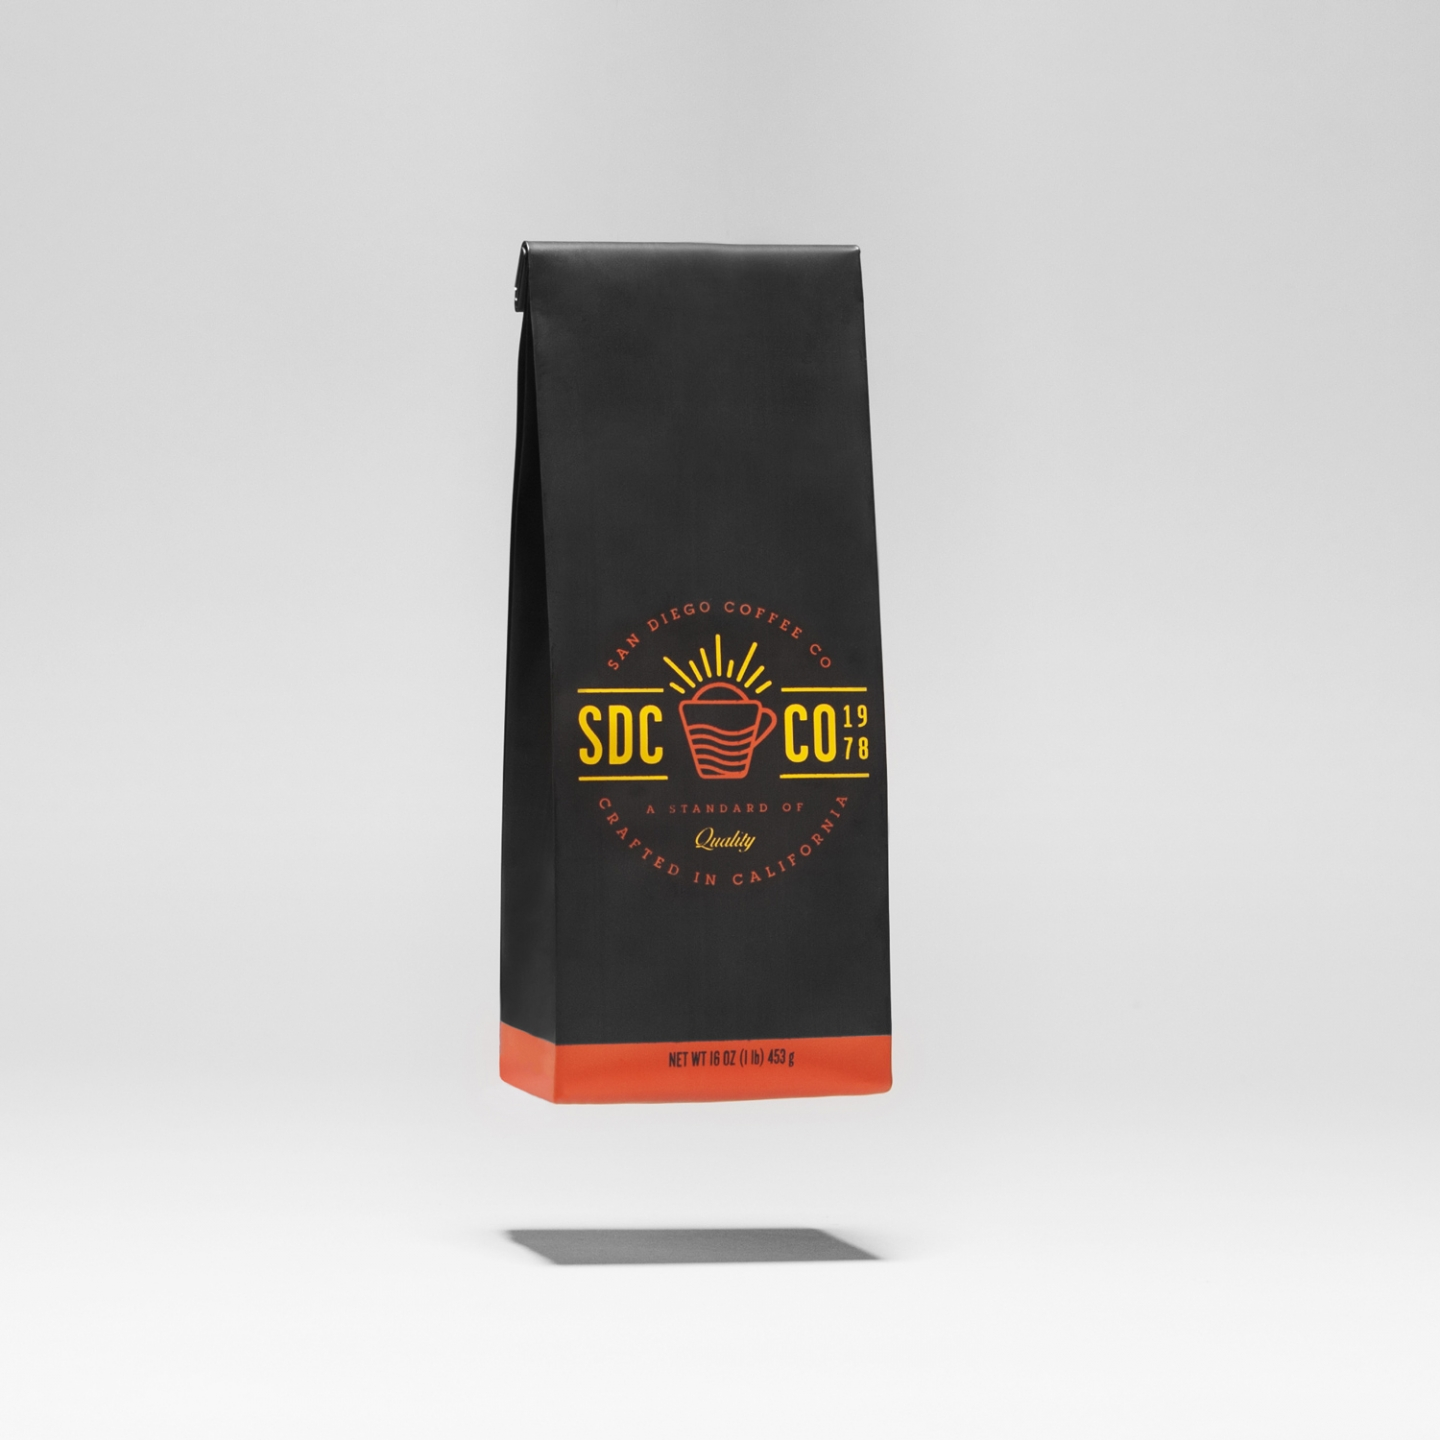 SD Coffee Co – Packaging Design & Branding